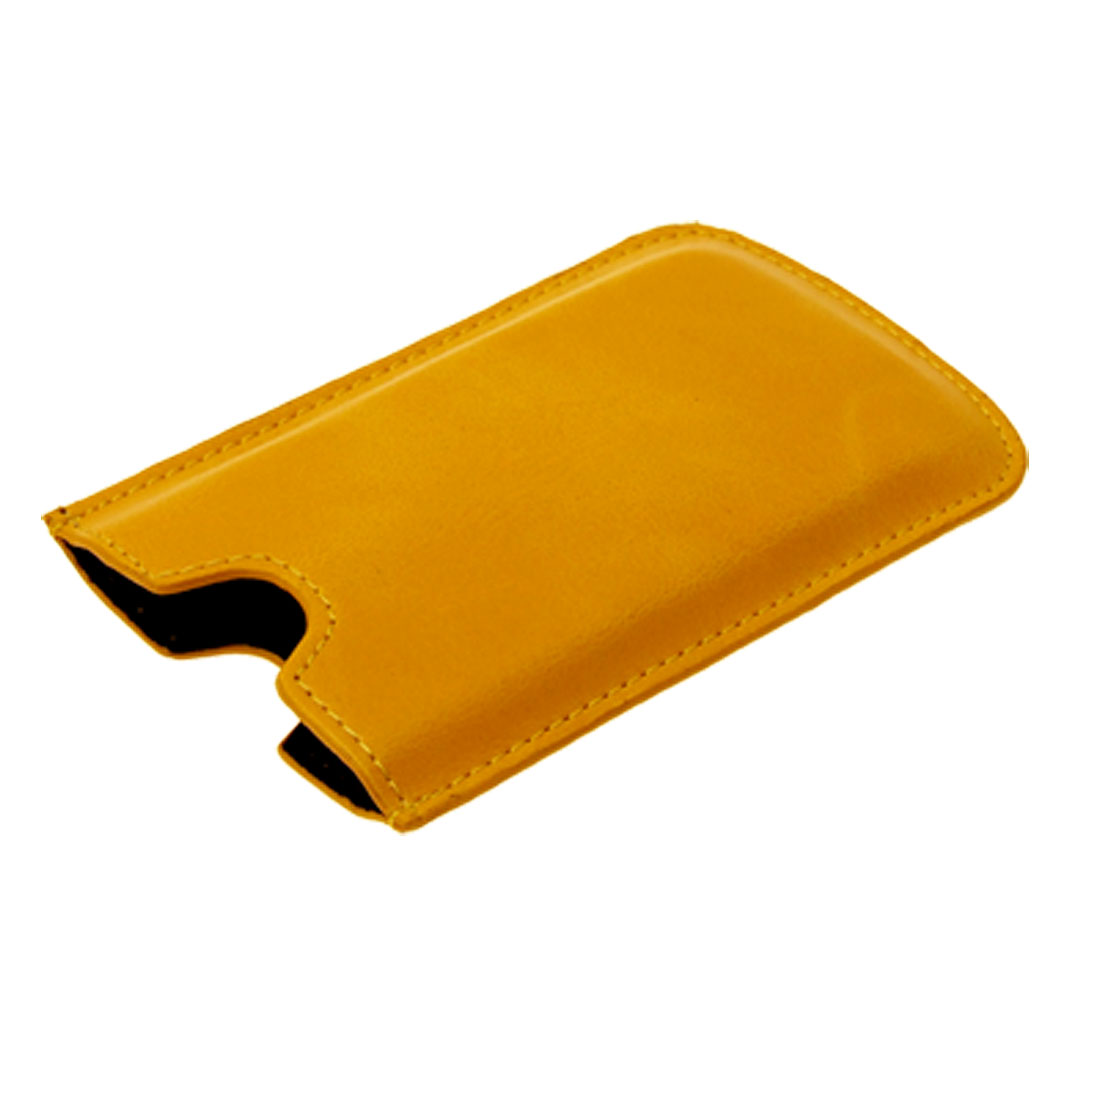 Portable Faux Leather Pouch Case for iPhone 3G Yellow